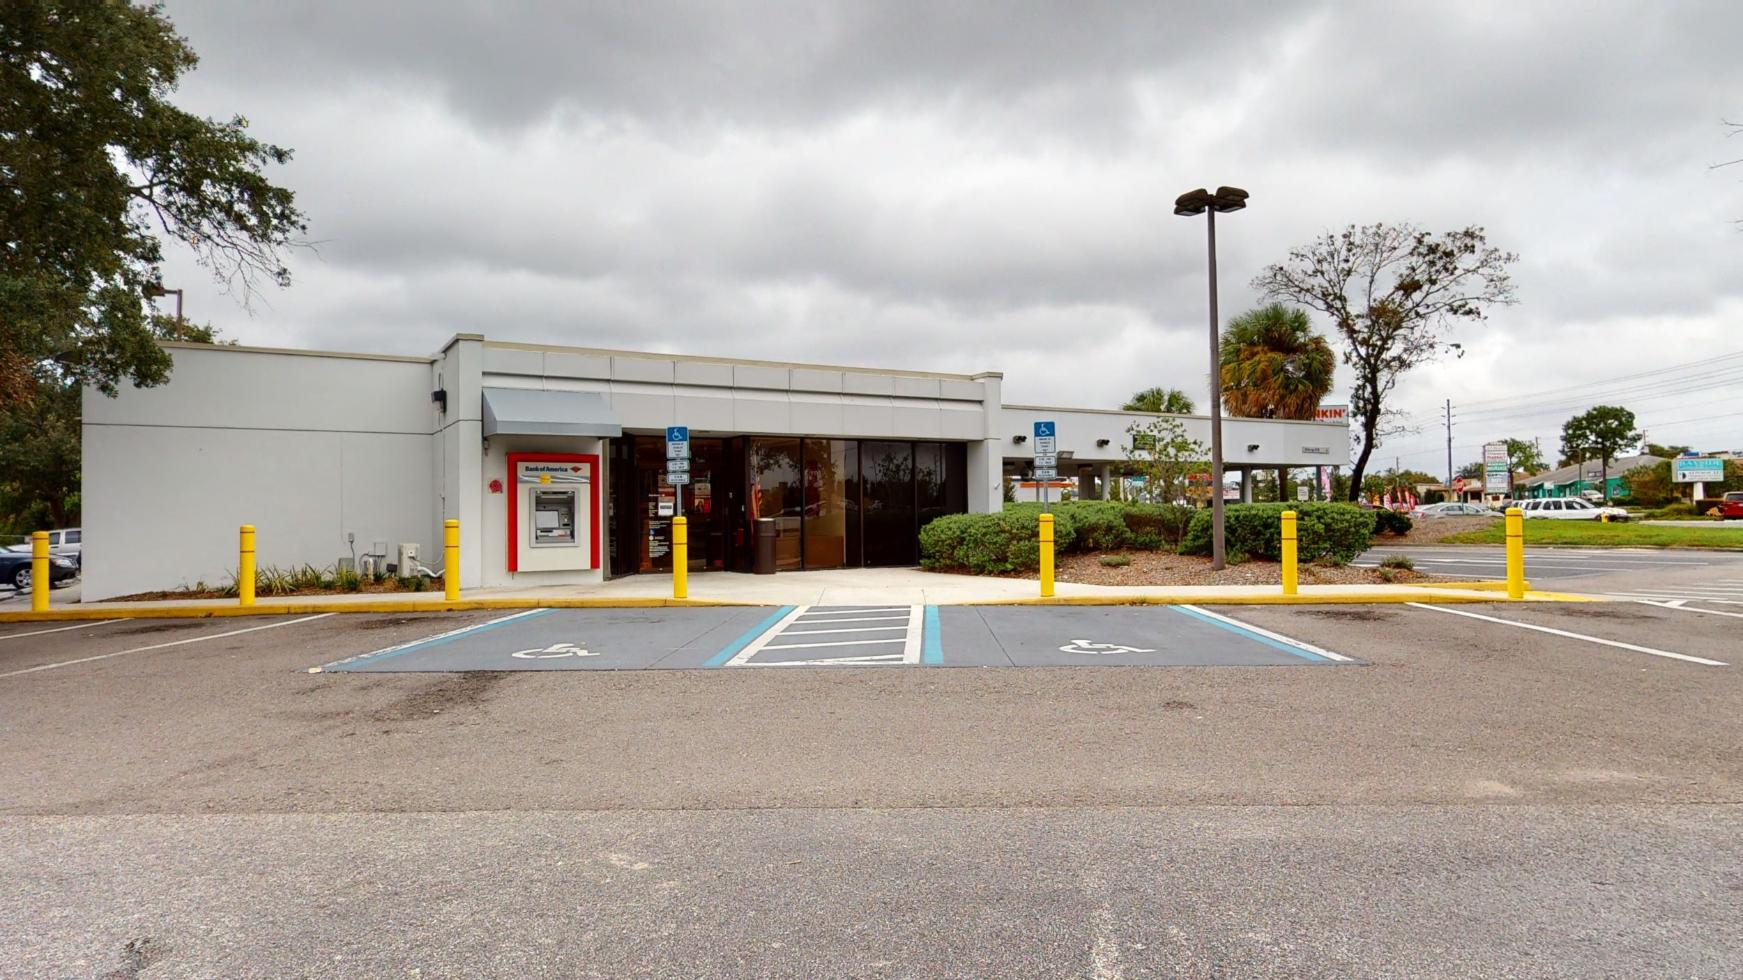 Bank of America financial center with drive-thru ATM and teller   11050 Spring Hill Dr, Spring Hill, FL 34608